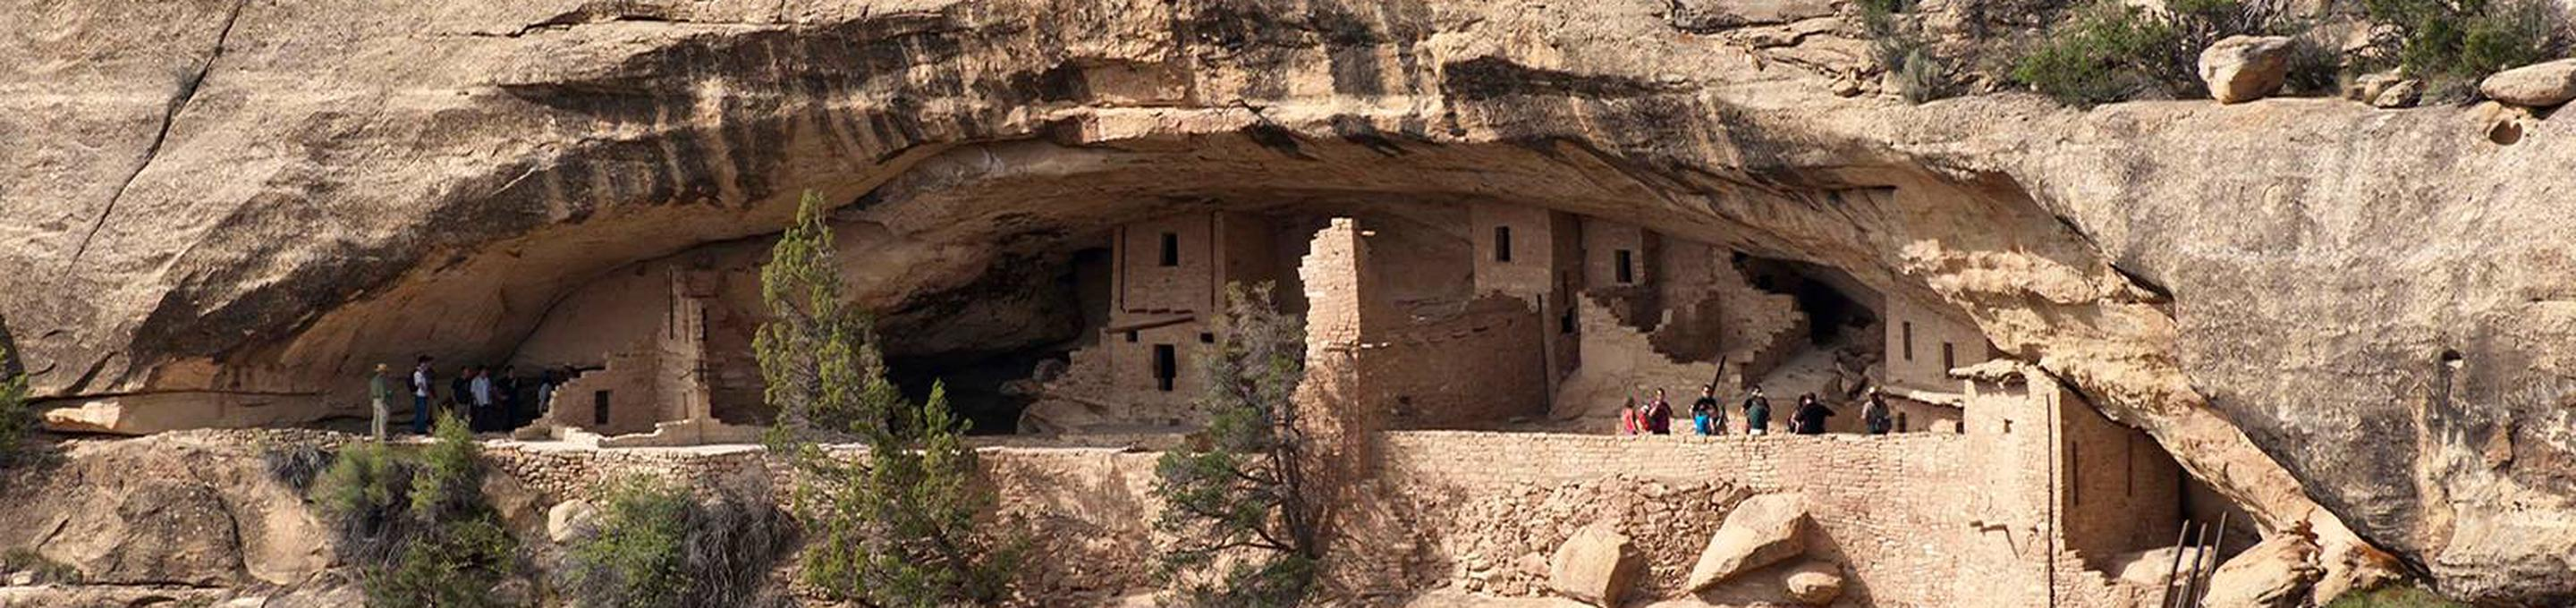 People exploring an ancient stone masonry village in a cliff alcoveVisitors on a ranger-guided tour of Balcony House.